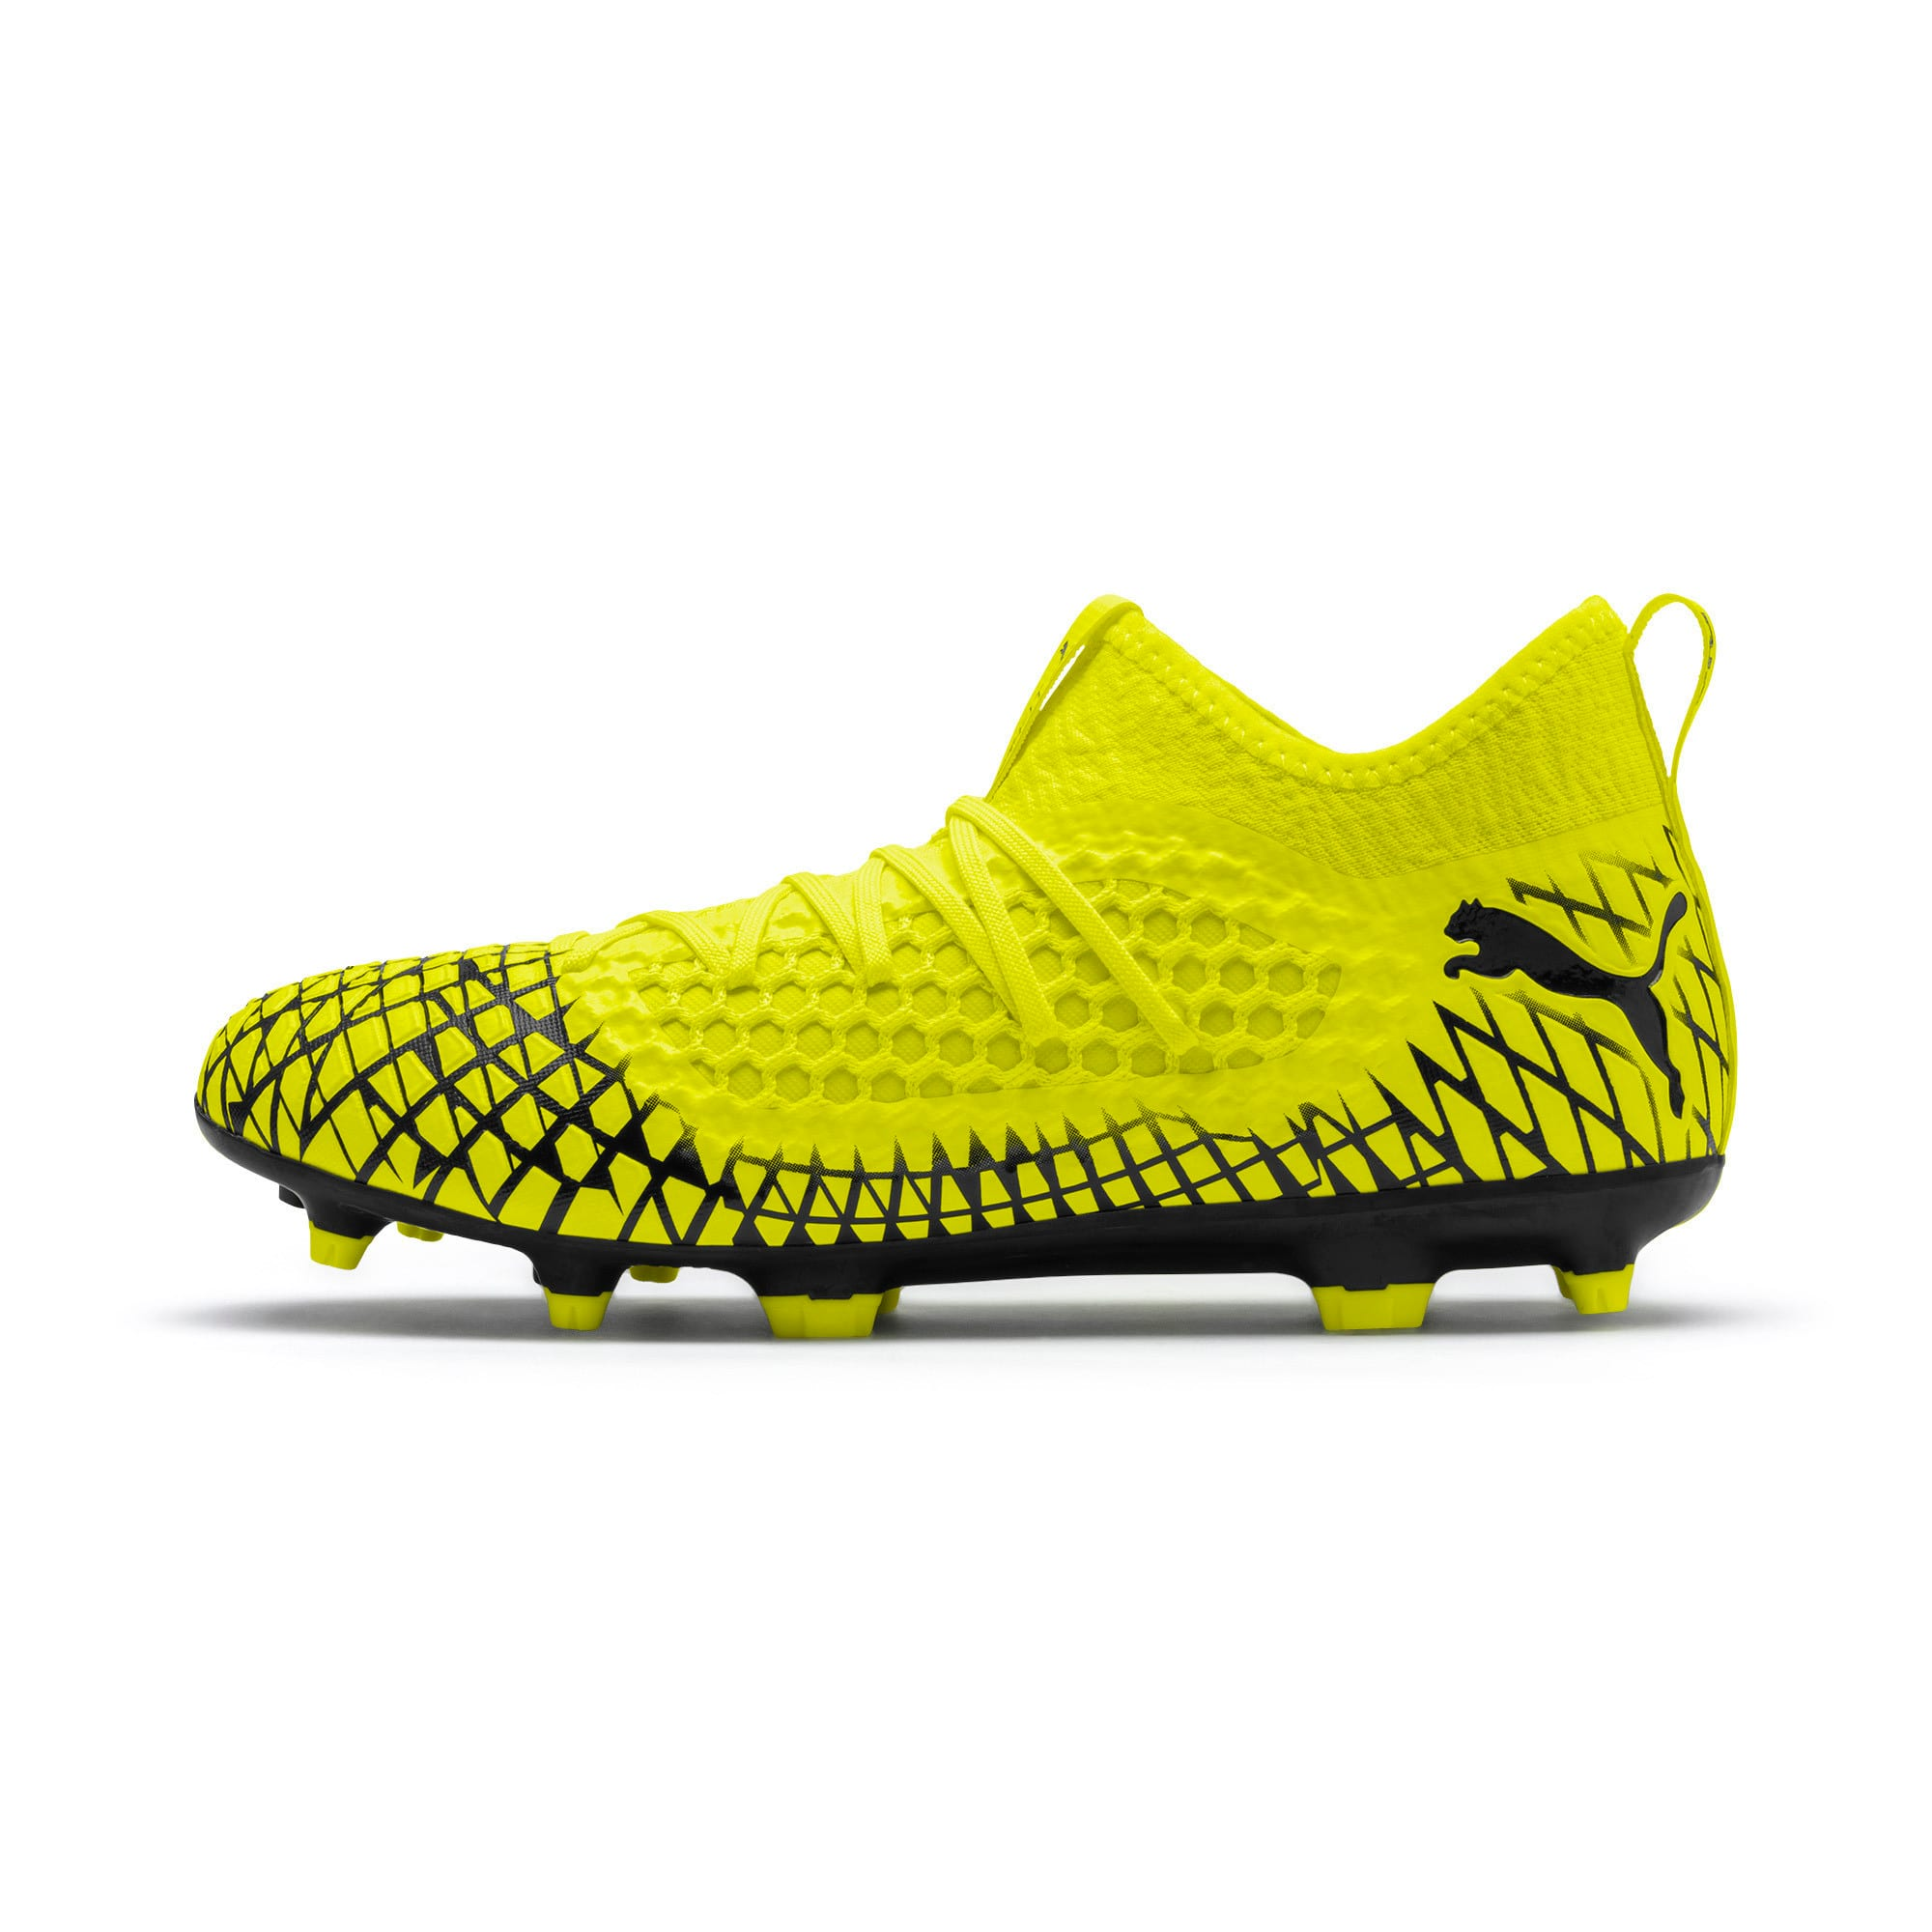 Thumbnail 1 of FUTURE 4.3 NETFIT FG/AG Men's Soccer Cleats, Yellow Alert-Puma Black, medium